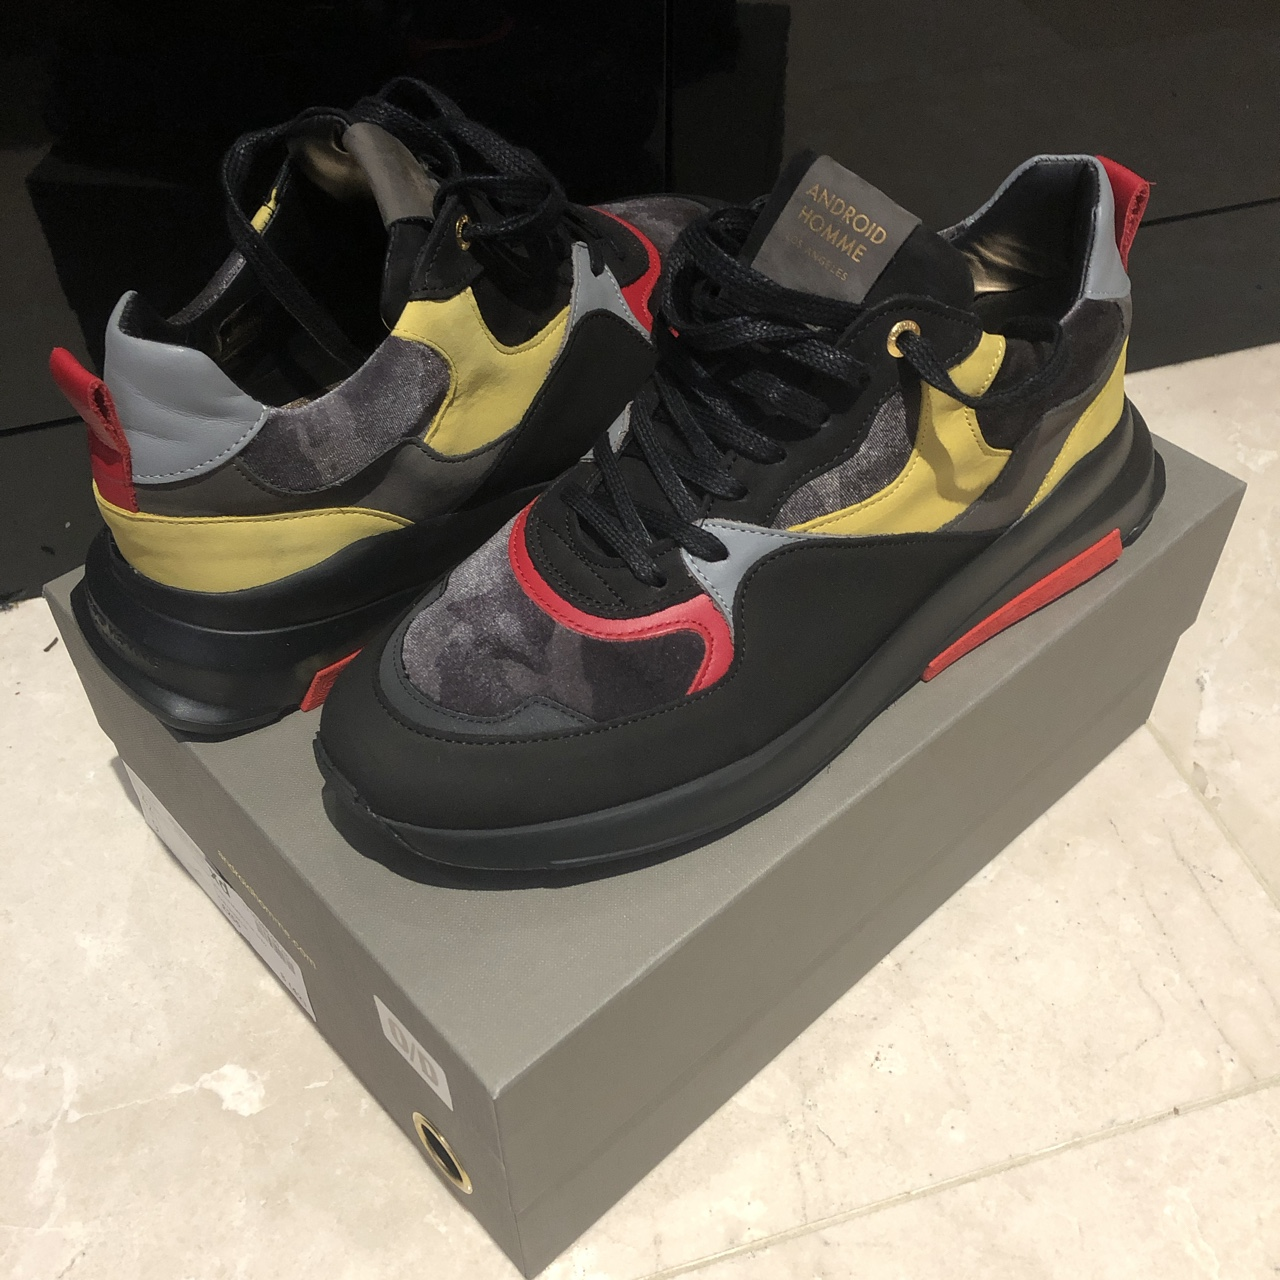 MALIBU RUNNER ANDROID HOMME -Never been